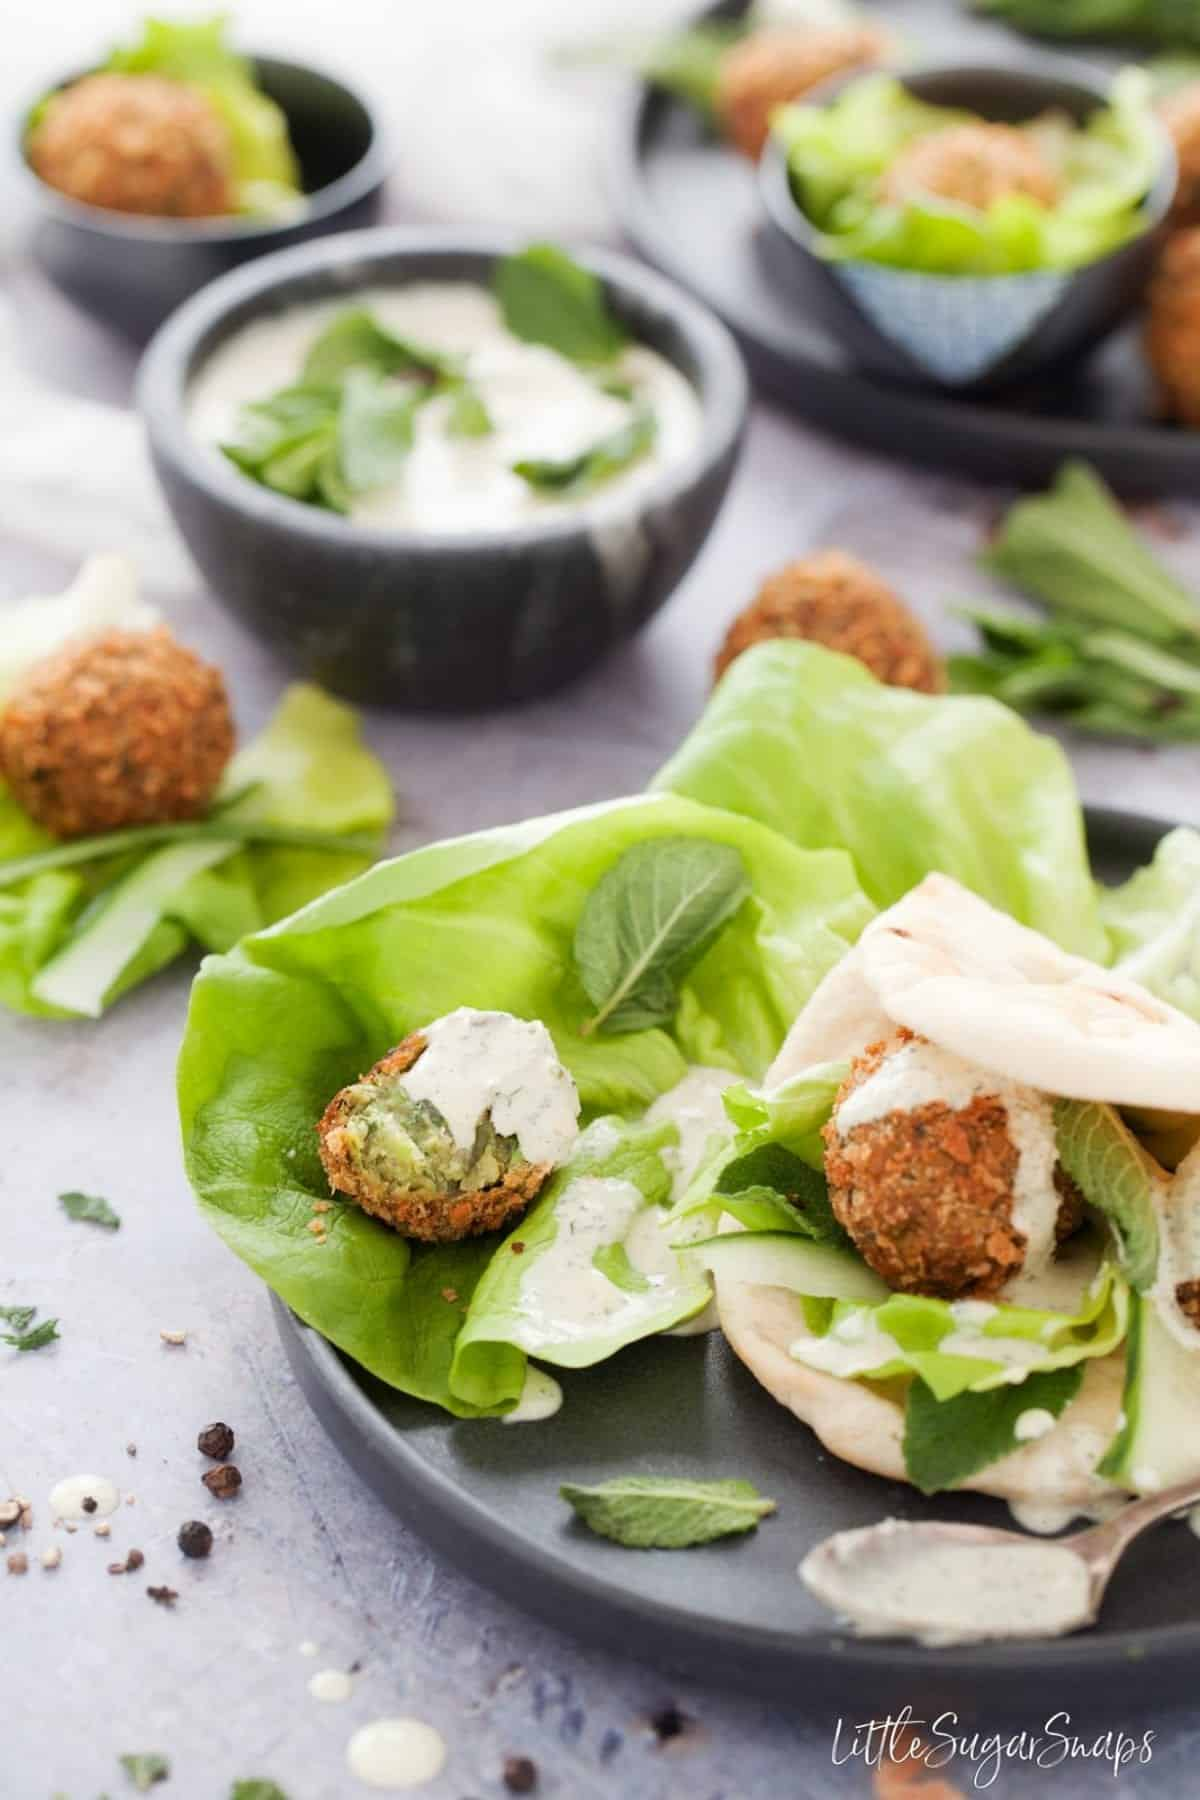 Mint Pea Falafel with lettuce, flatbread and dressing.